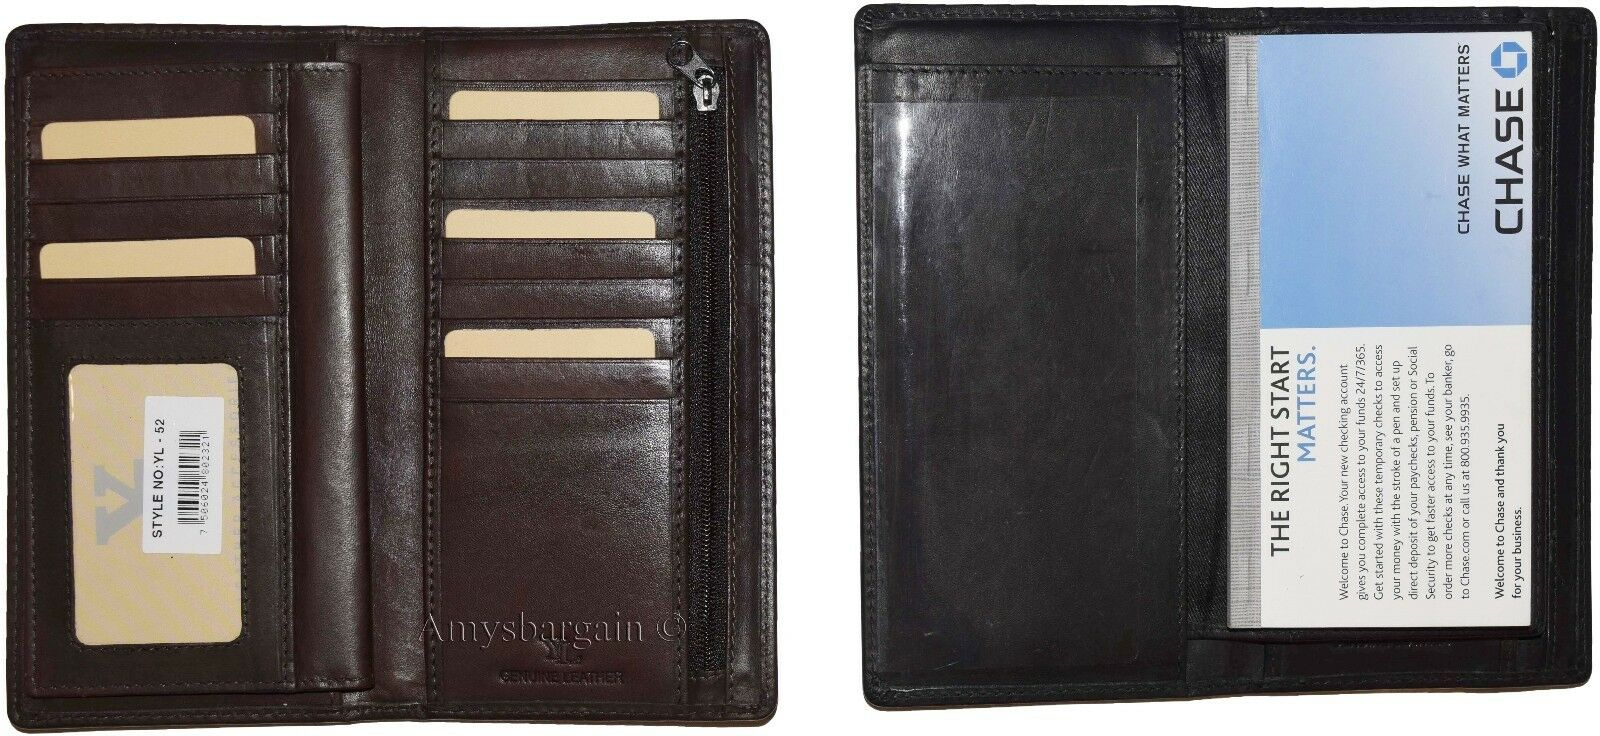 New Leather check wallet Unbranded checkbook cover credit card change purse BNWT